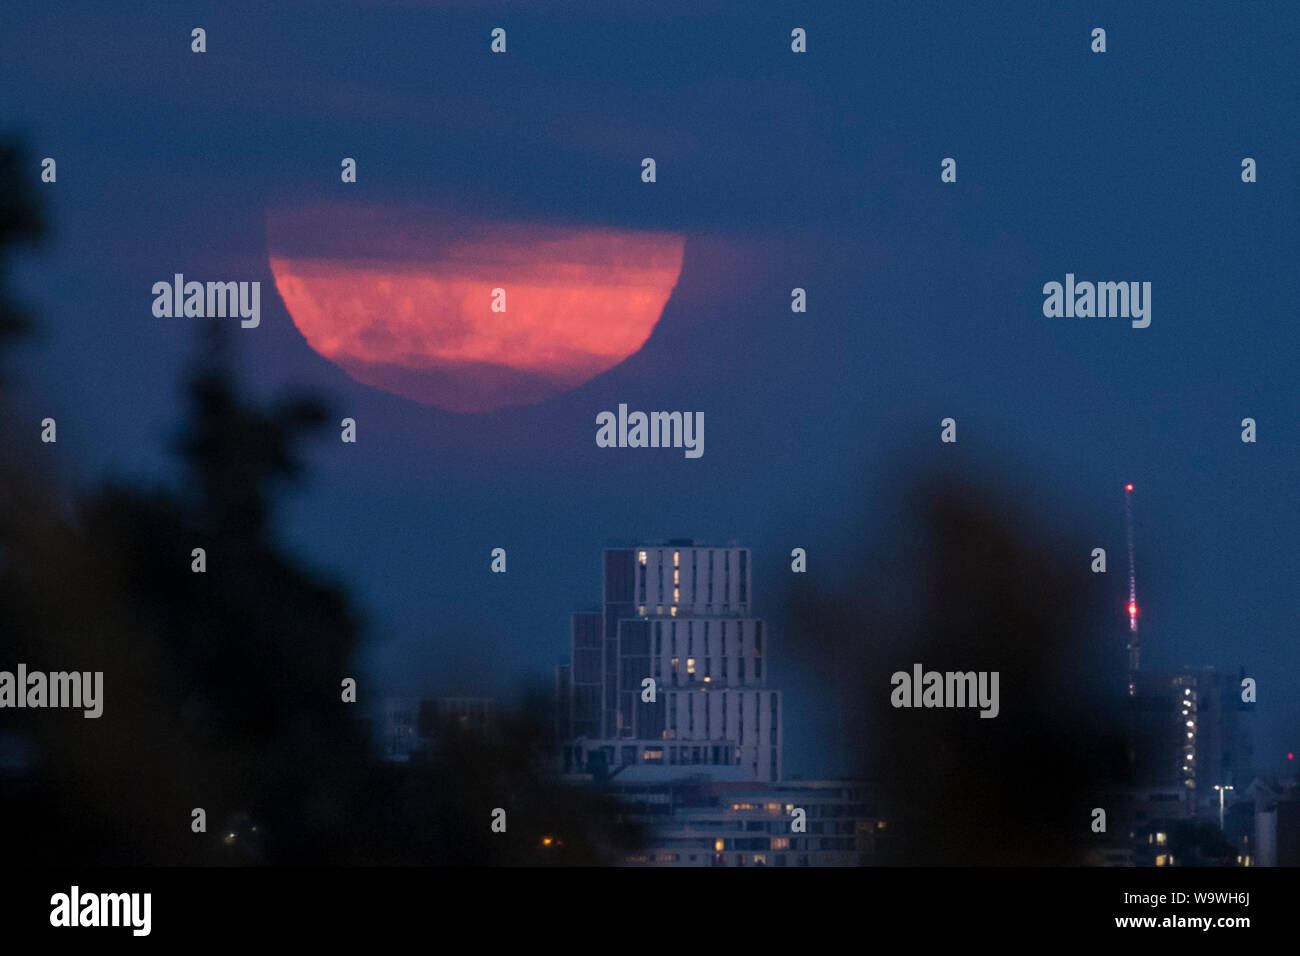 London, UK  15 August 2019  A full moon rises over Wembley